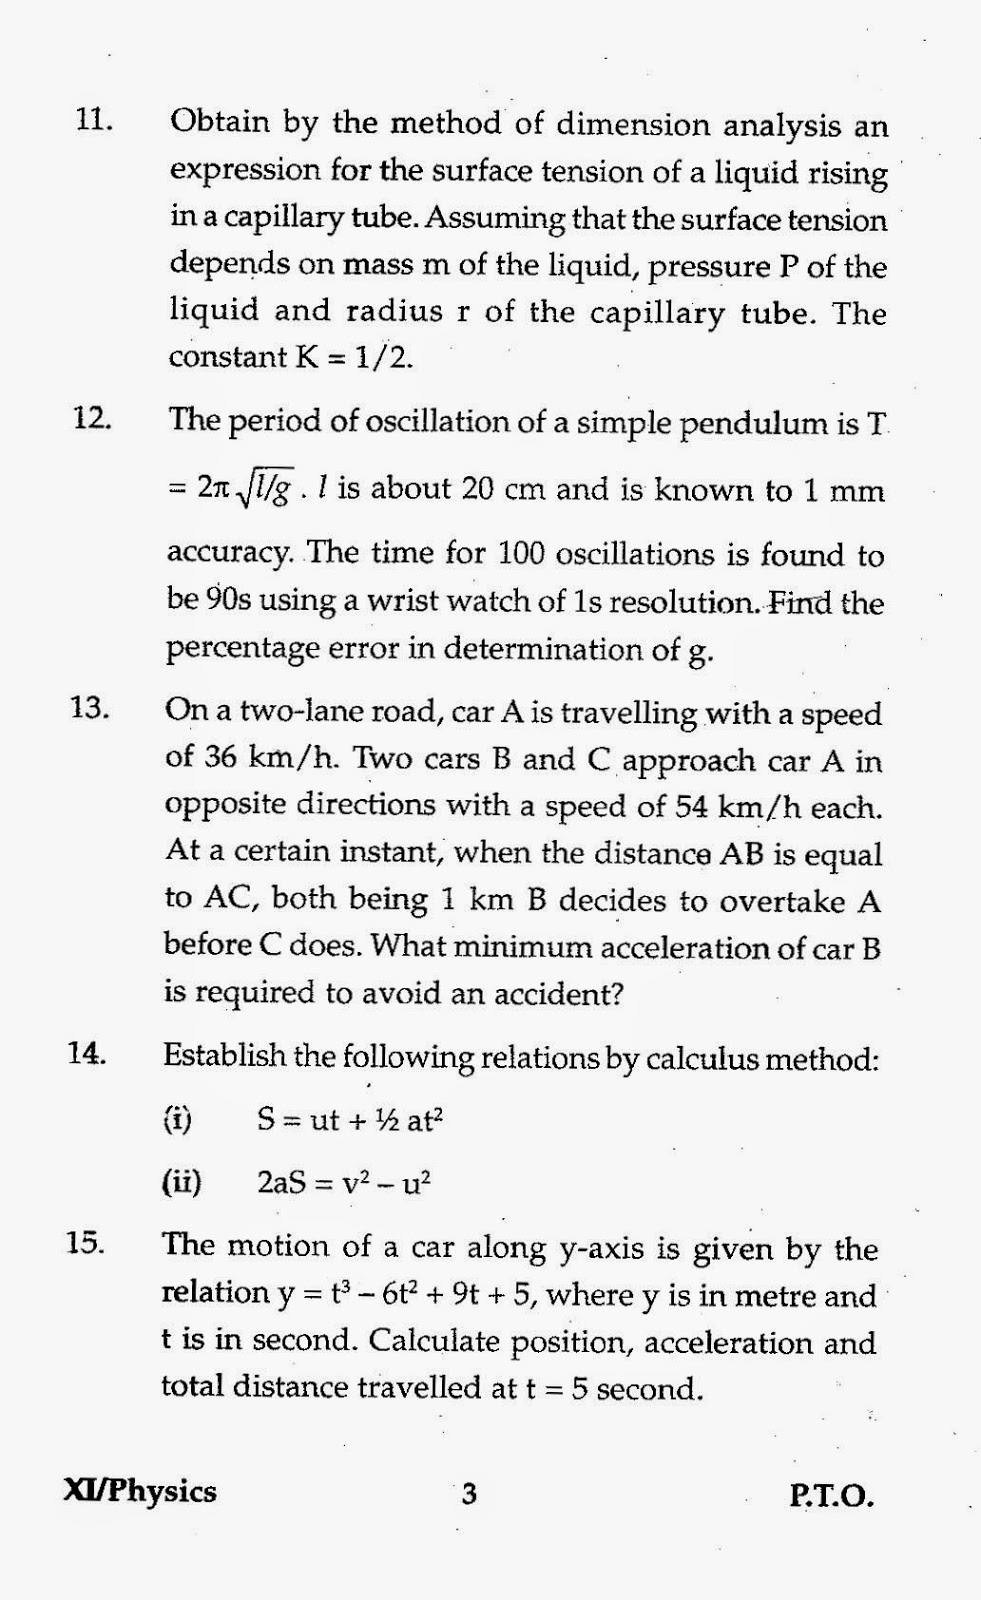 physics term test papers Secondary annuals past papers 2014 physics with regards to levels and tracks, exam papers on the right-hand side are pitched at a higher level of difficulty.